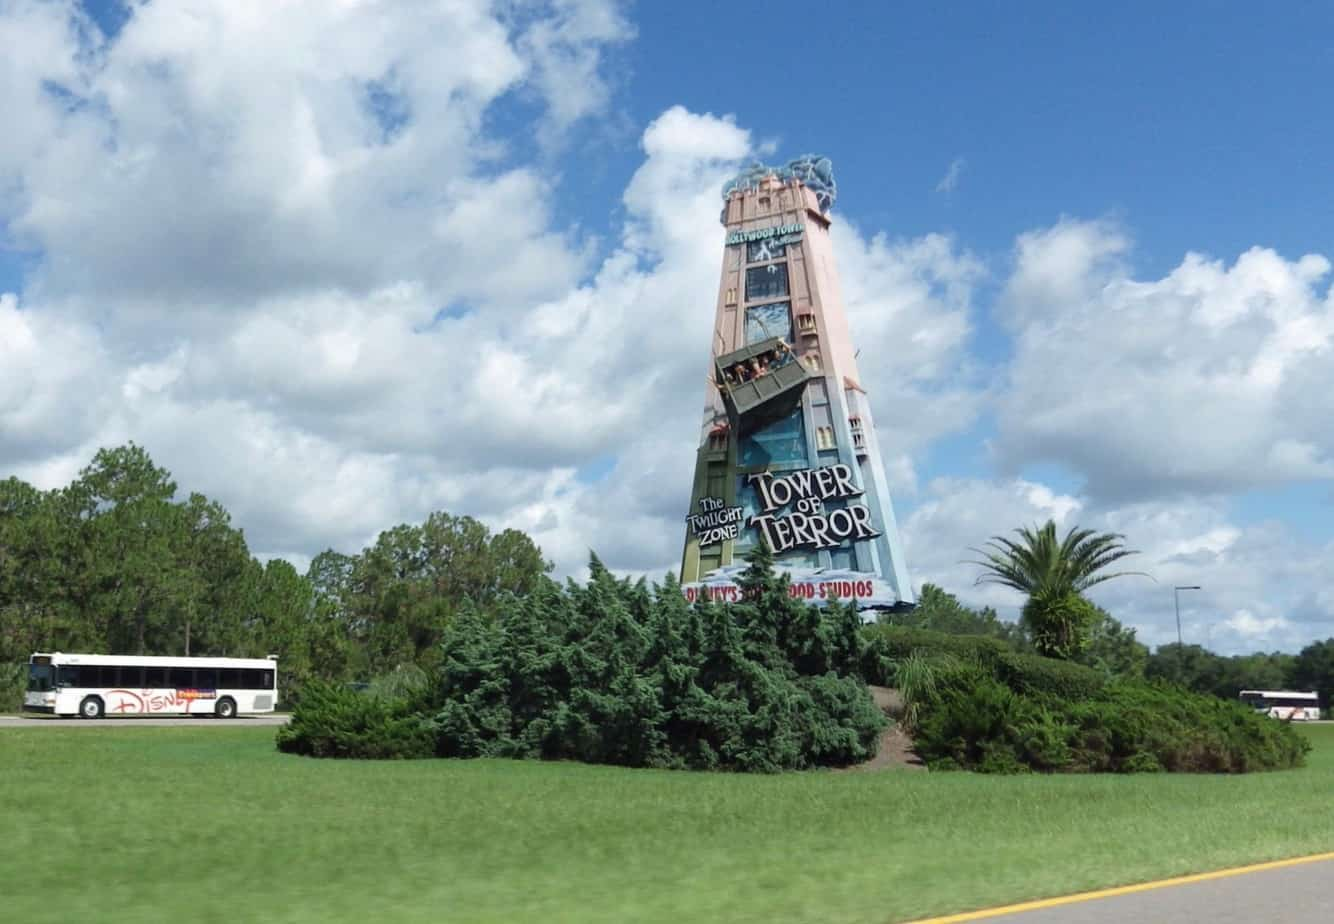 WDW Tower of Terror Road Sign